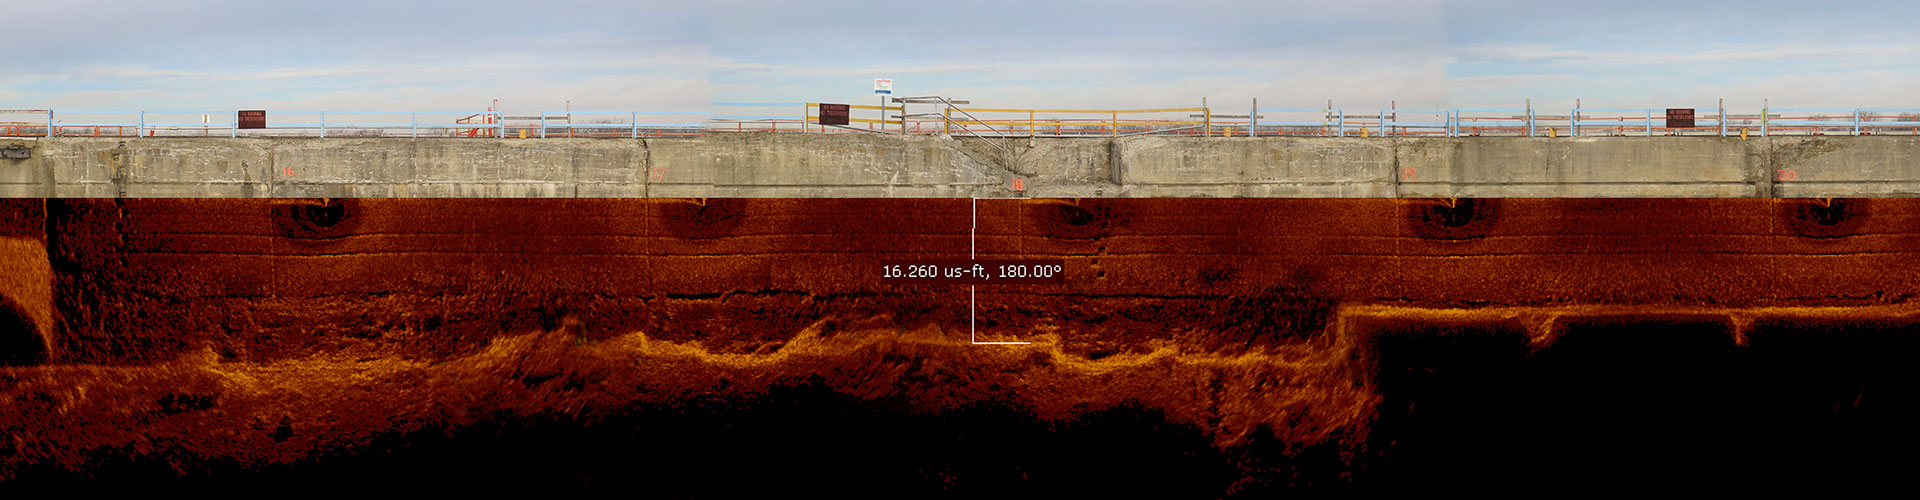 sector scan, underwater acoustic imaging, underwater imaging, 360 degree acoustic imaging, dam inspections